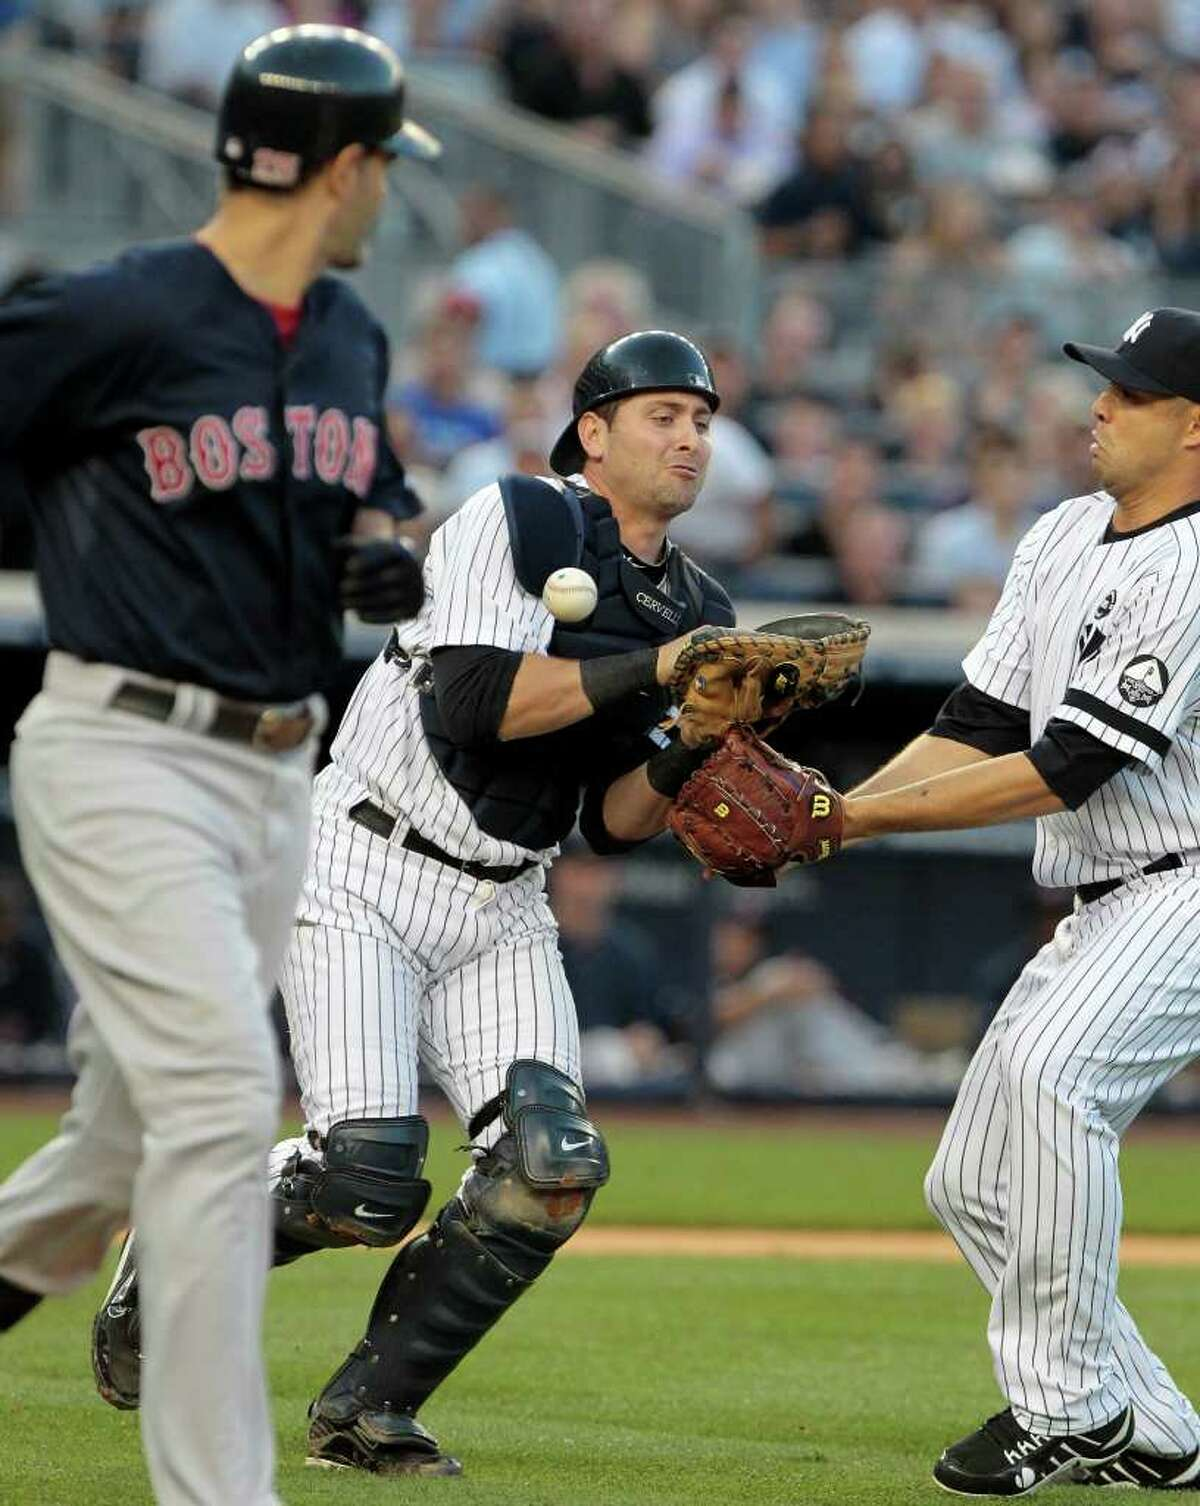 Boston Red Sox's Mike Lowell, left, and New York Yankees starting pitcher Javier Vazquez, right, watch New York Yankees catcher Francisco Cervelli, center, drop a pop fly during the second inning of a baseball game Friday, Aug. 6, 2010, in New York. (AP Photo/Frank Franklin II)